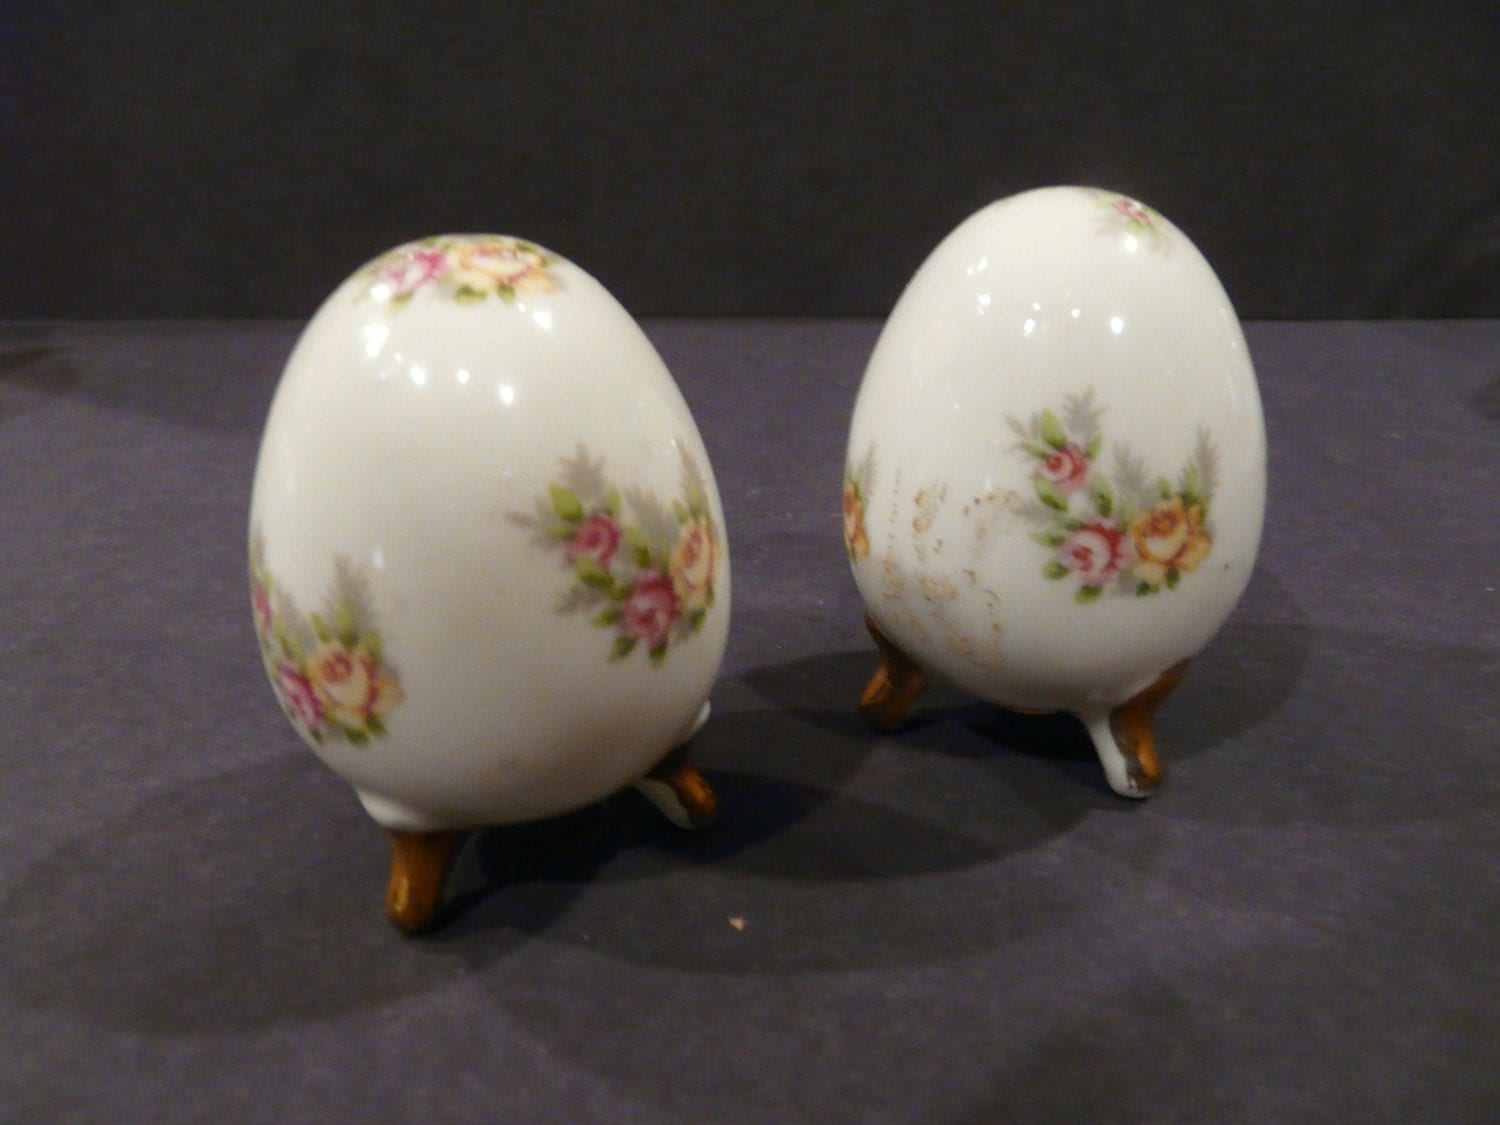 Salt and pepper ceramic shakers egg enesco by neverlostgarden - Egg shaped salt and pepper shakers ...